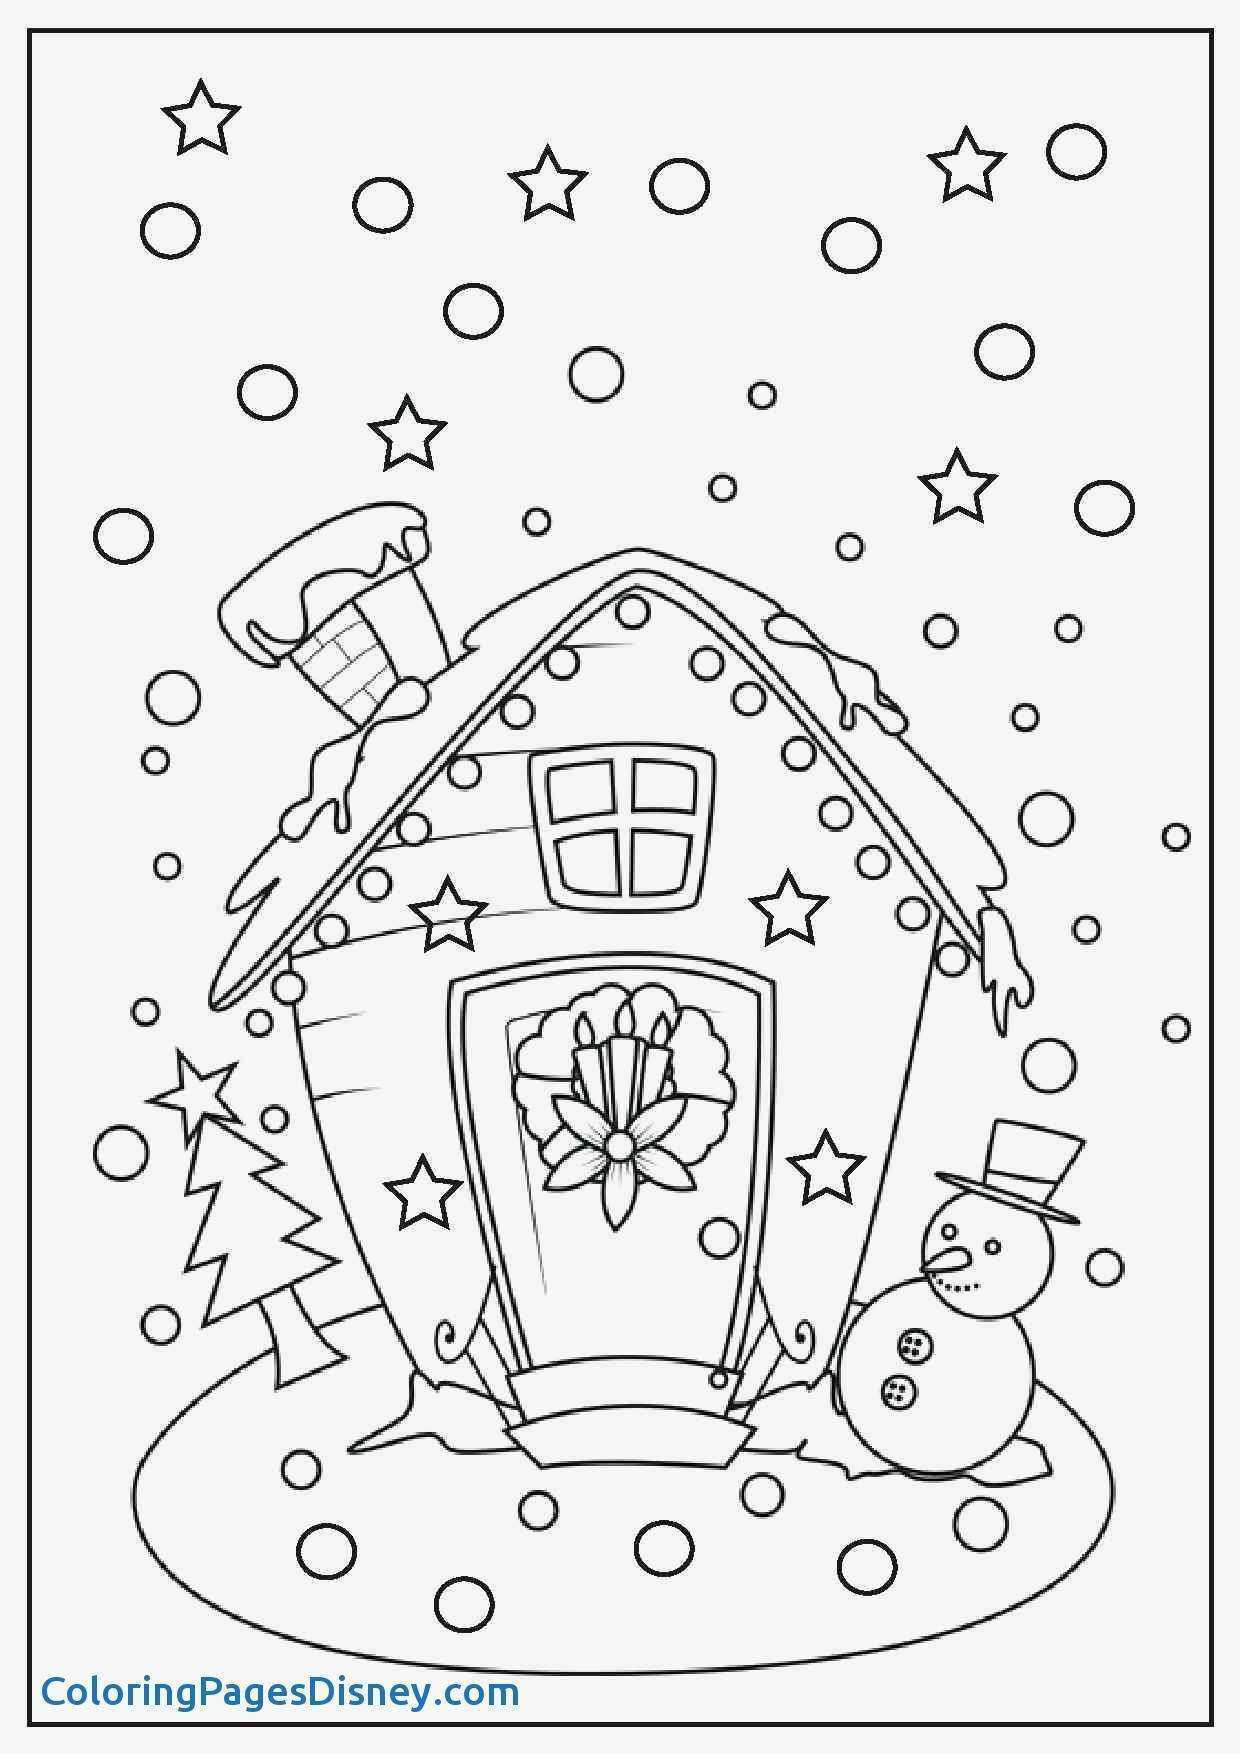 Christmas Wreath Coloring Pages Goku Coloring Pages New Christmas Wreaths Coloring Pages Free